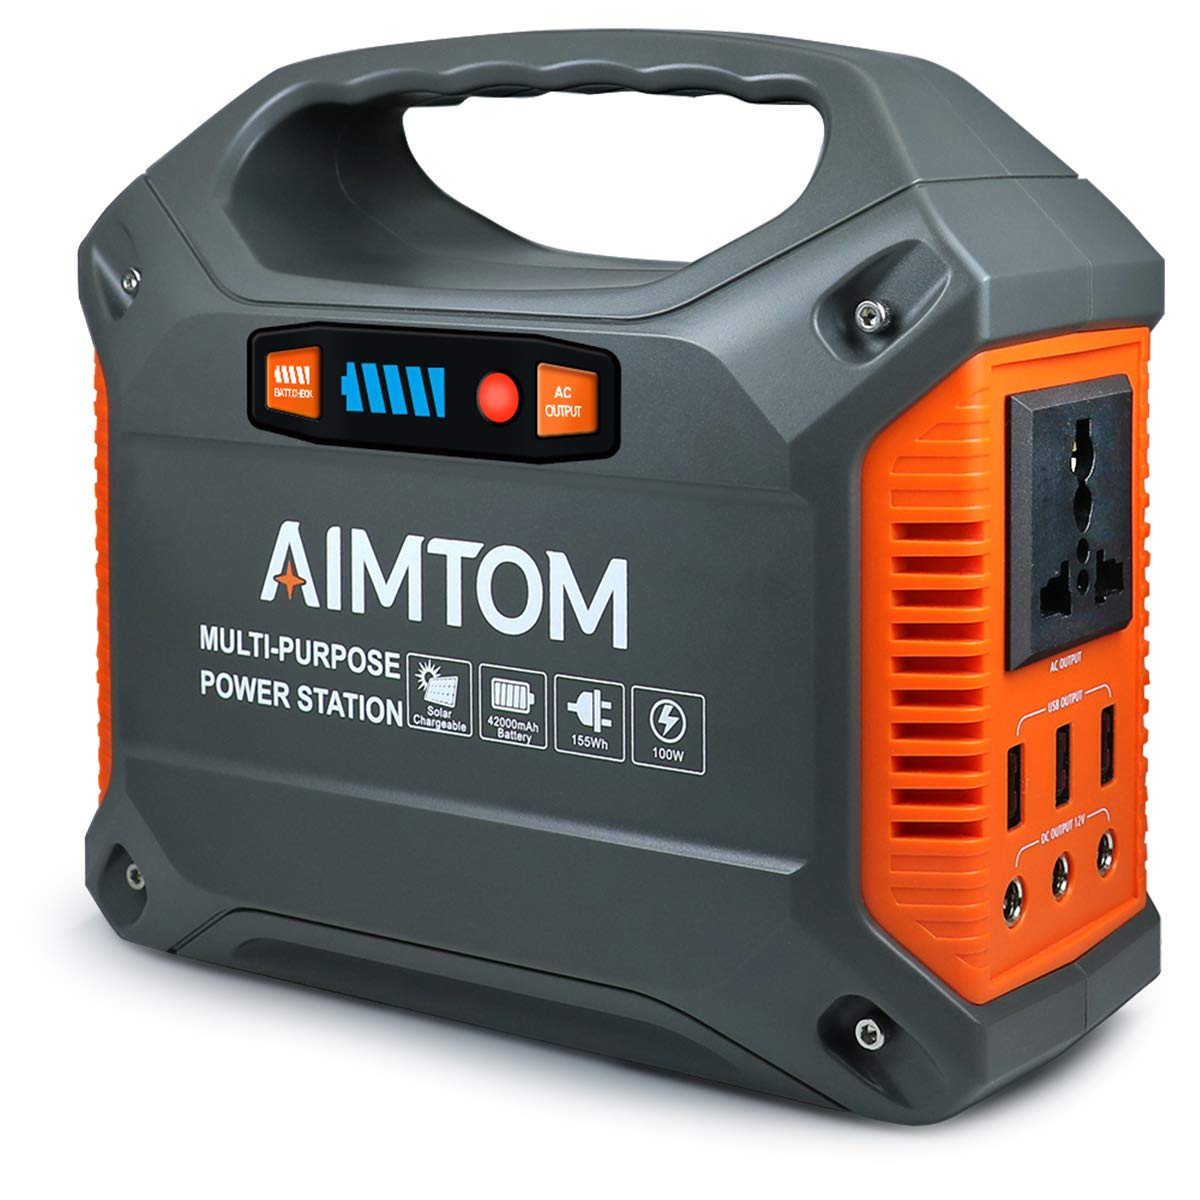 AIMTOM Portable Solar Generator, 42000mAh 155Wh Power Station, Emergency Backup Power Supply with Flashlights, for Camping, Home, CPAP, Travel, Outdoor 110V 100W AC Outlet, 3X 12V DC, 3X USB Output